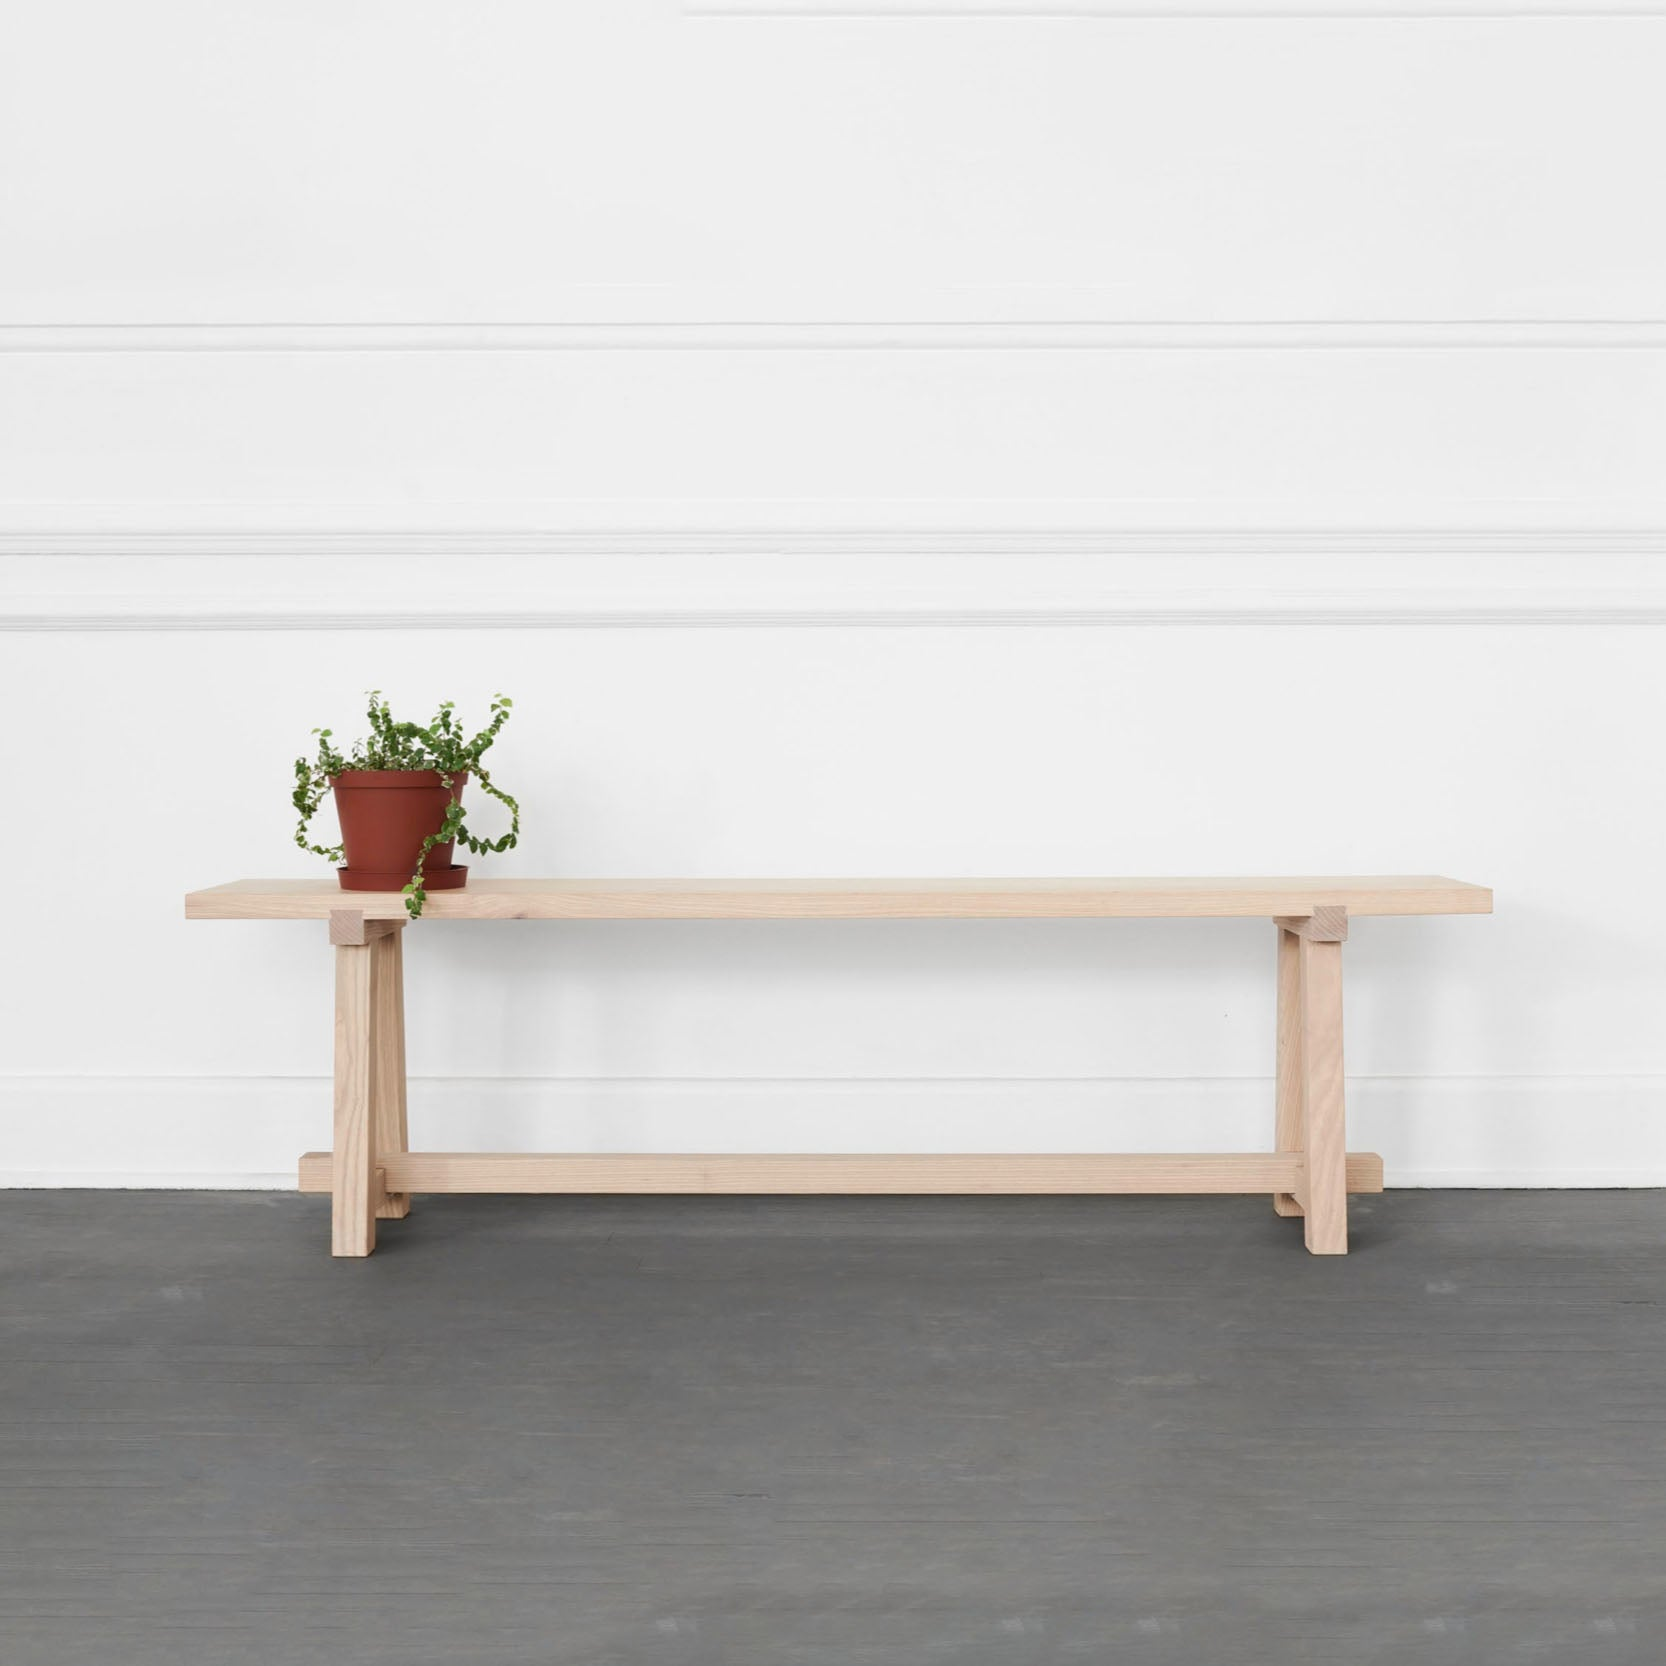 HARVEST SKINNY SEATING BENCH by James Mudge at SARZA. Benches, furniture, Harvest Tables, James Mudge, Seating Benches, Skinny, tables